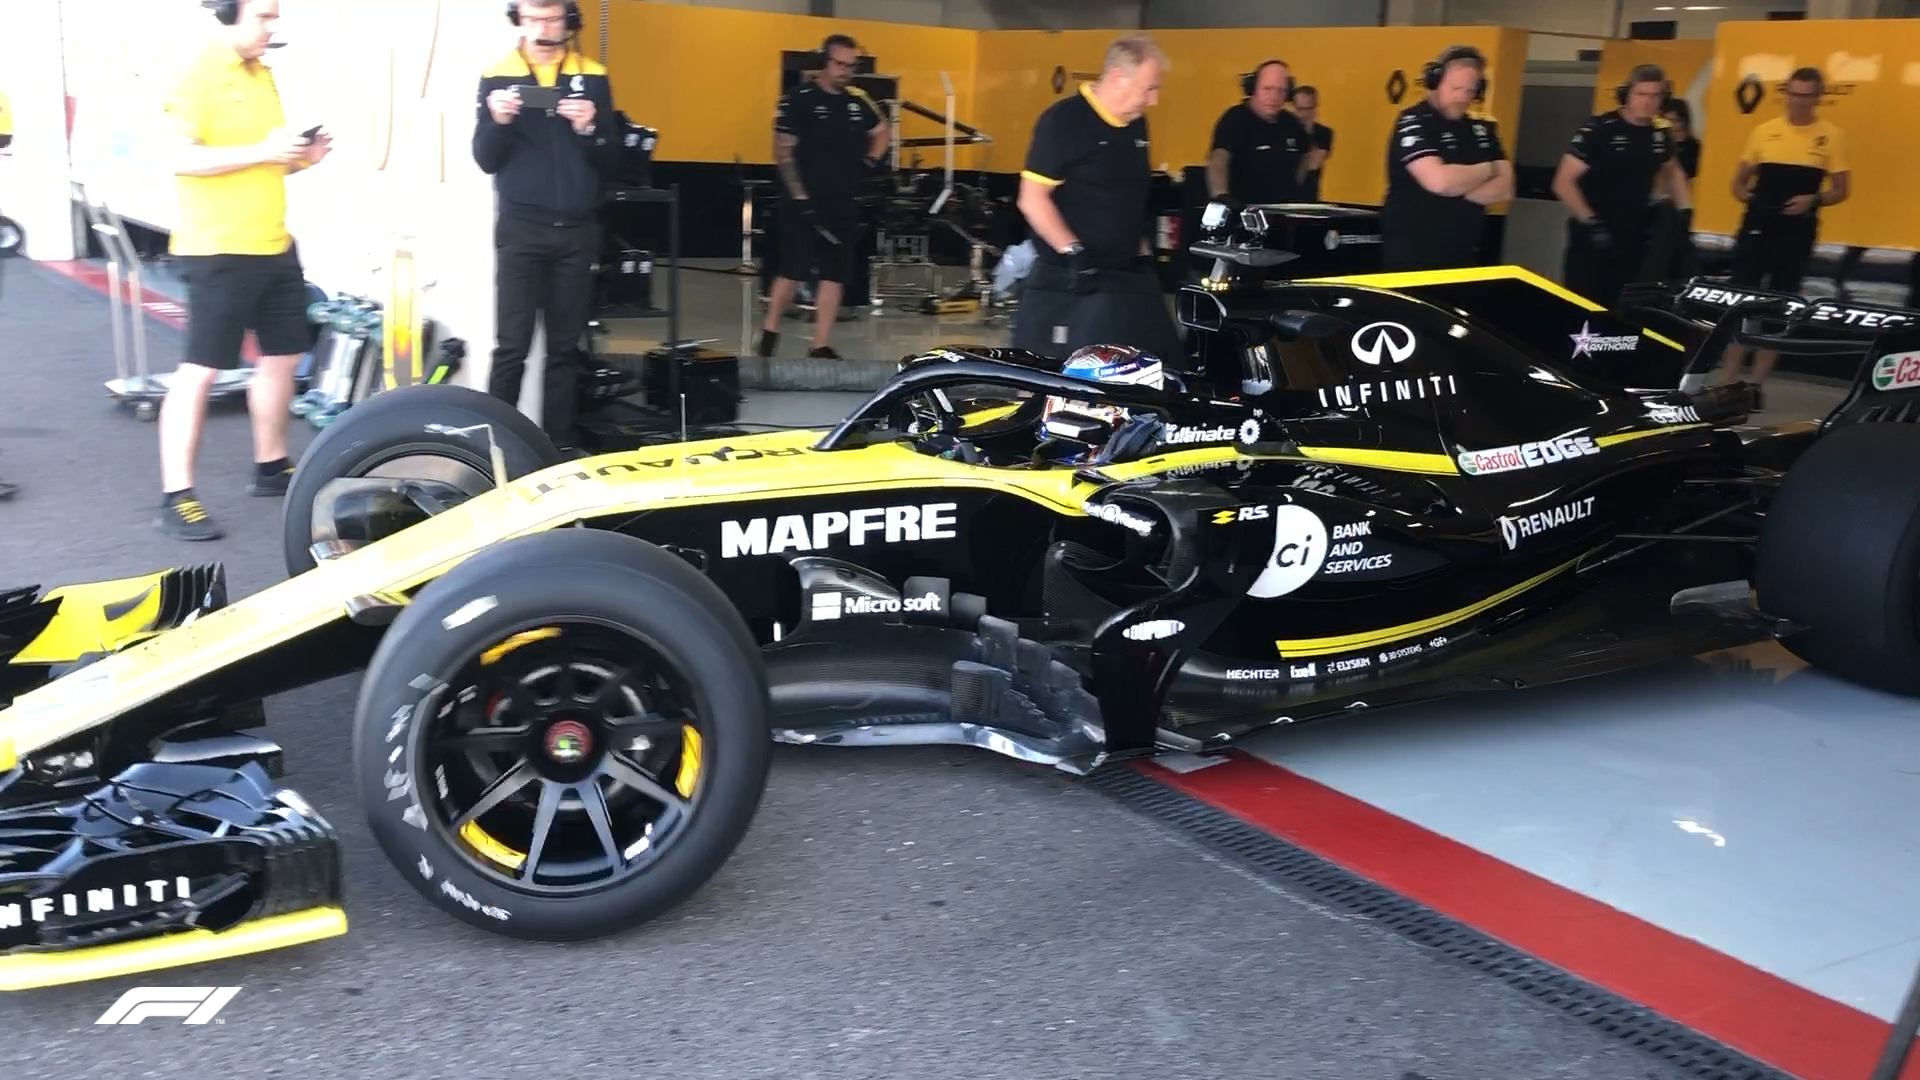 WATCH: First footage of an F1 car on 18-inch tyres ...